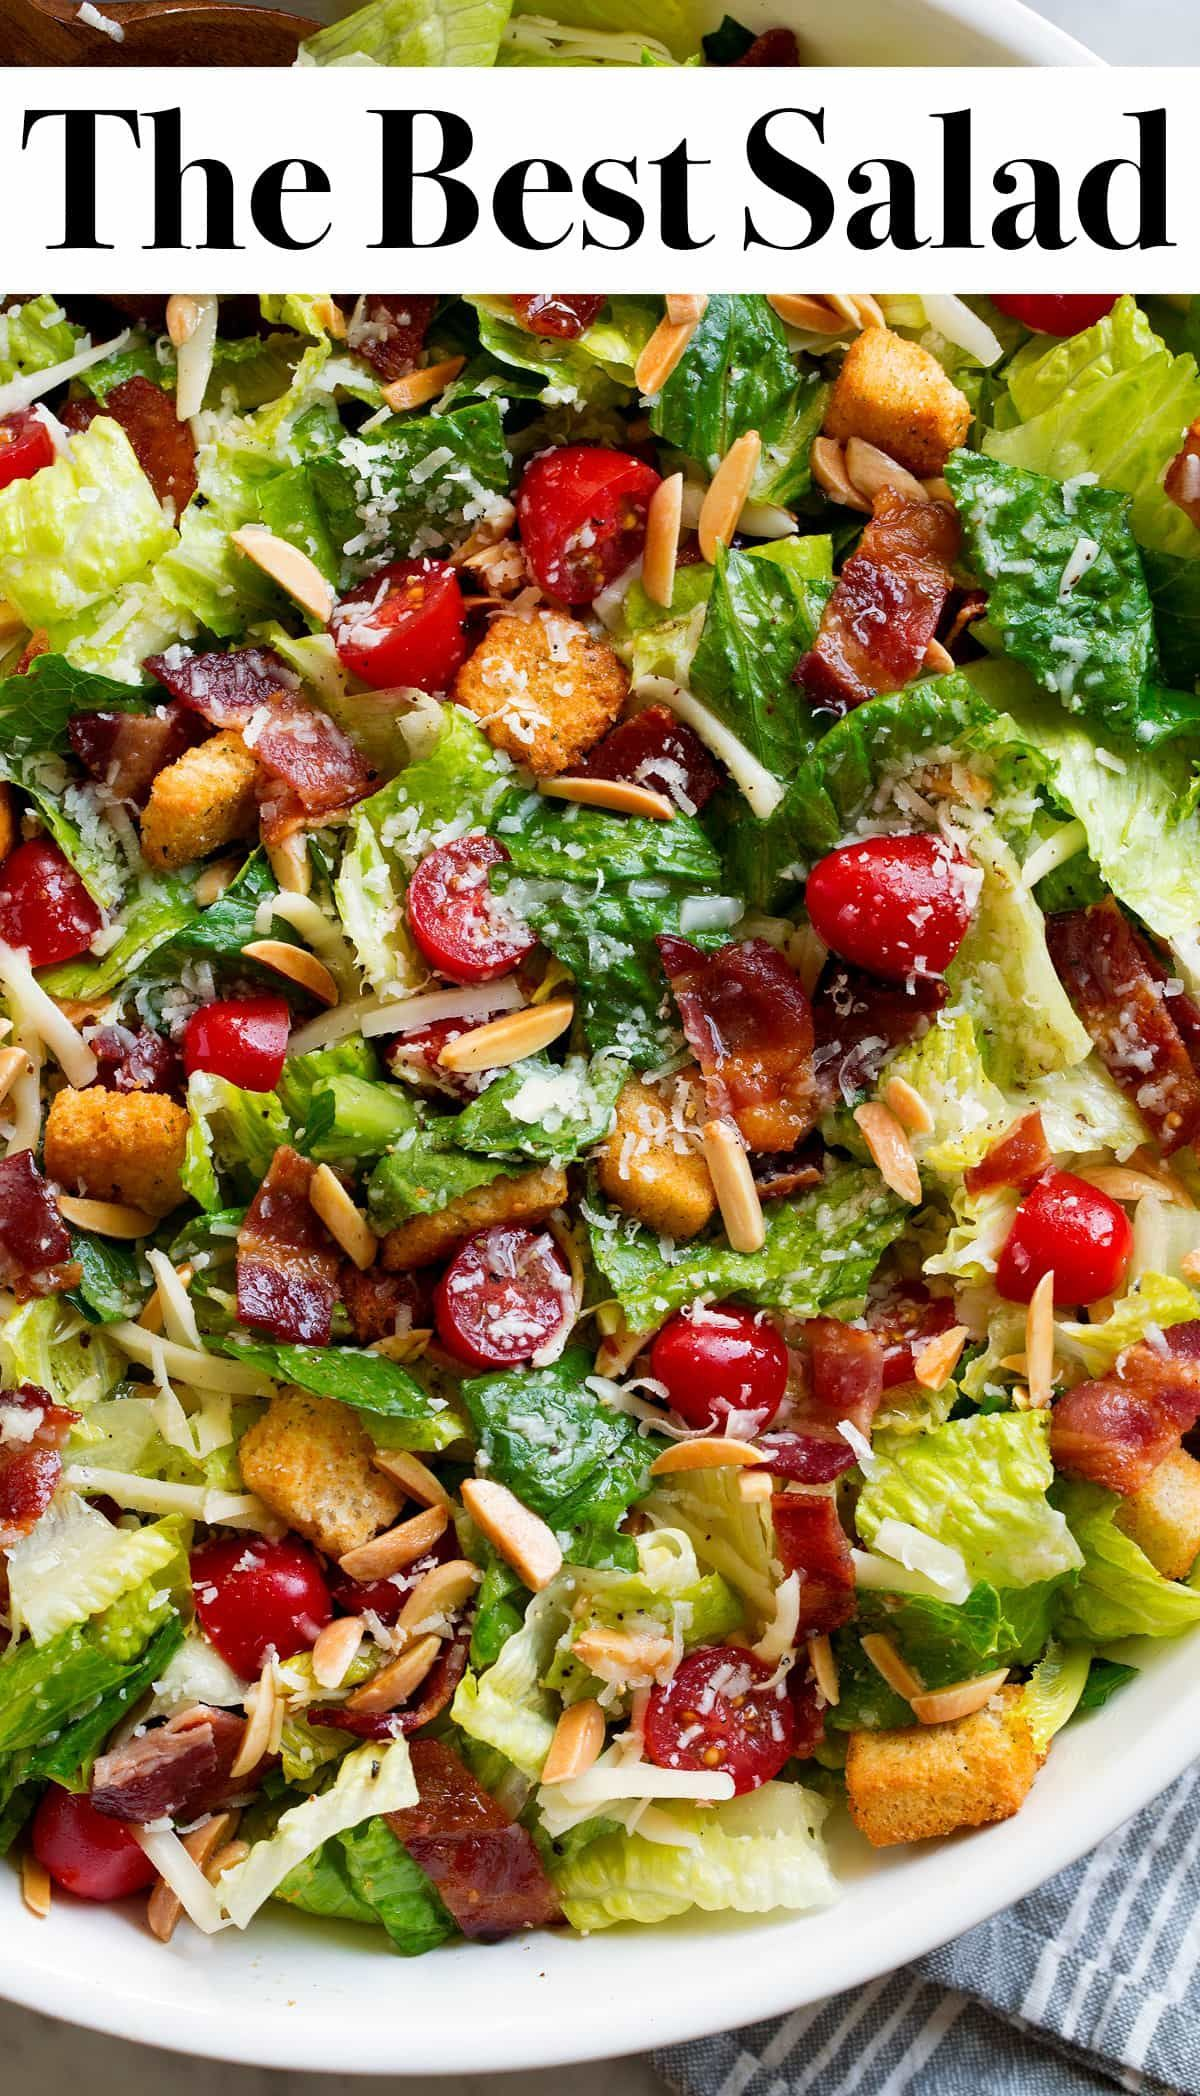 .The Best Salad Recipe - Cooking Classy #Classy #Cooking #Recipe #Salad #salad recipes for dinner